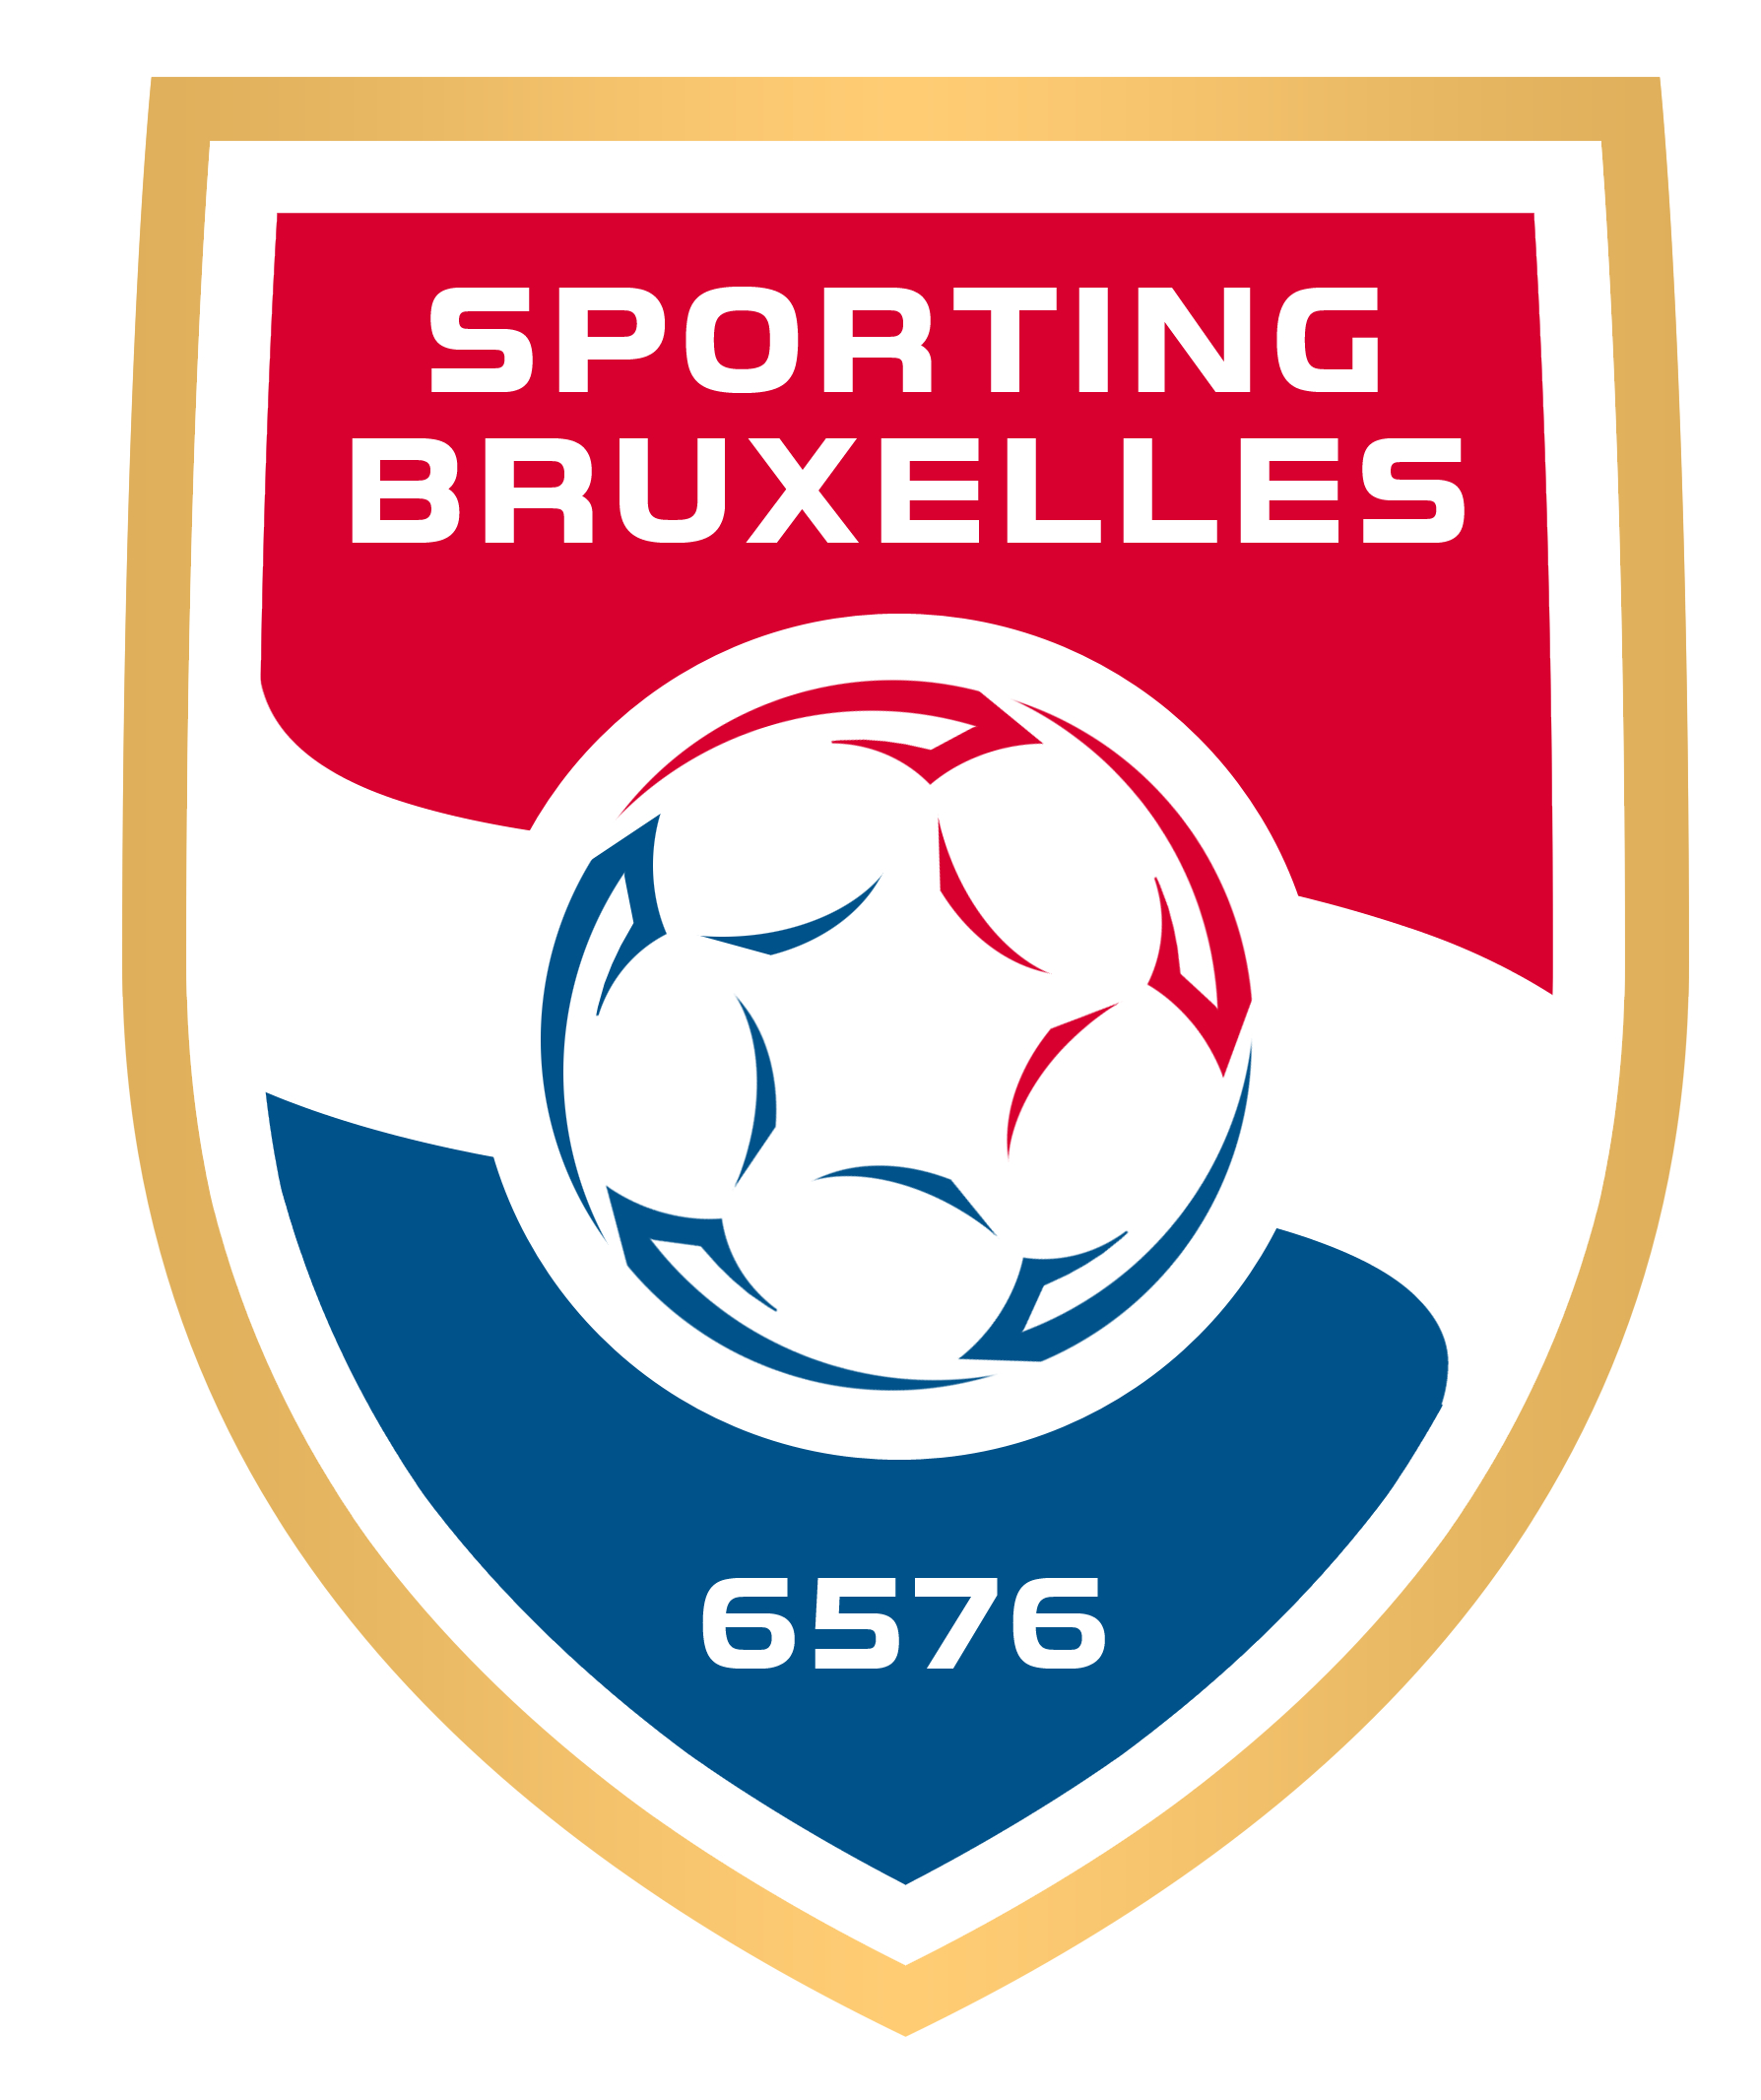 6 - Sporting Bruxelles A